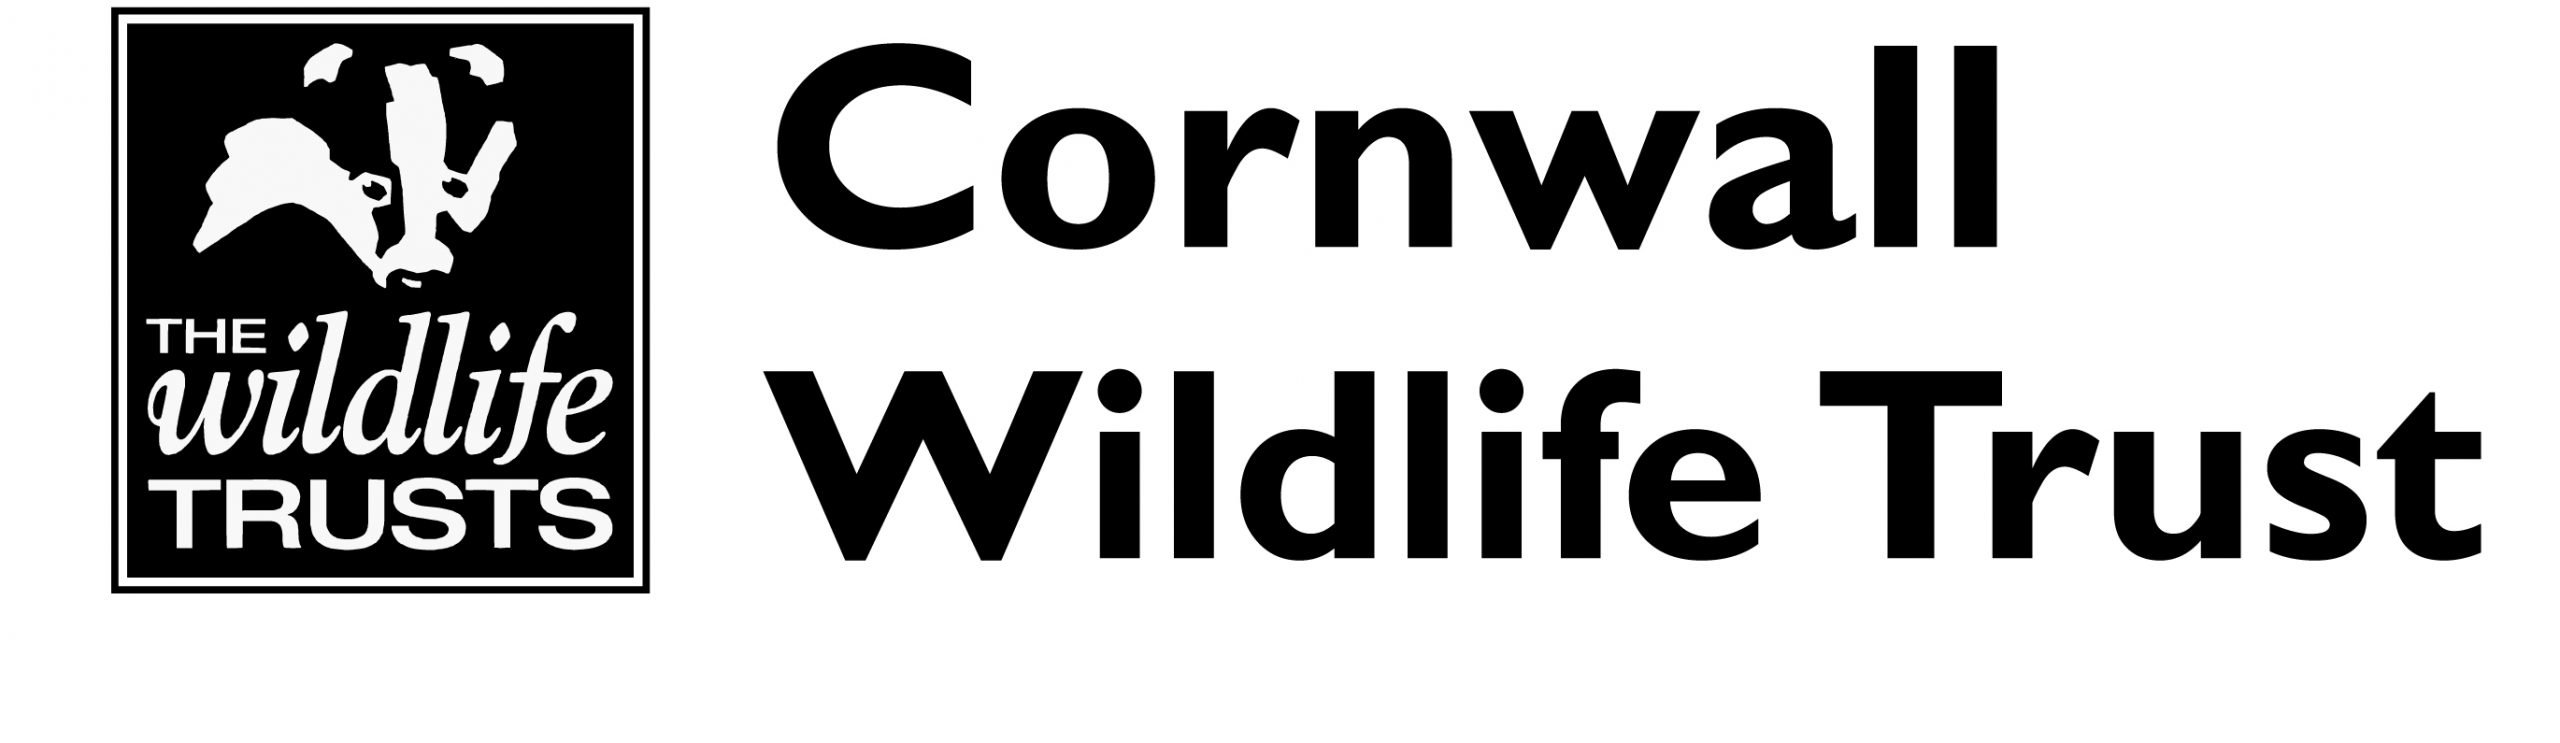 Cornwall-wildlife-trust-logo-apr-14-left